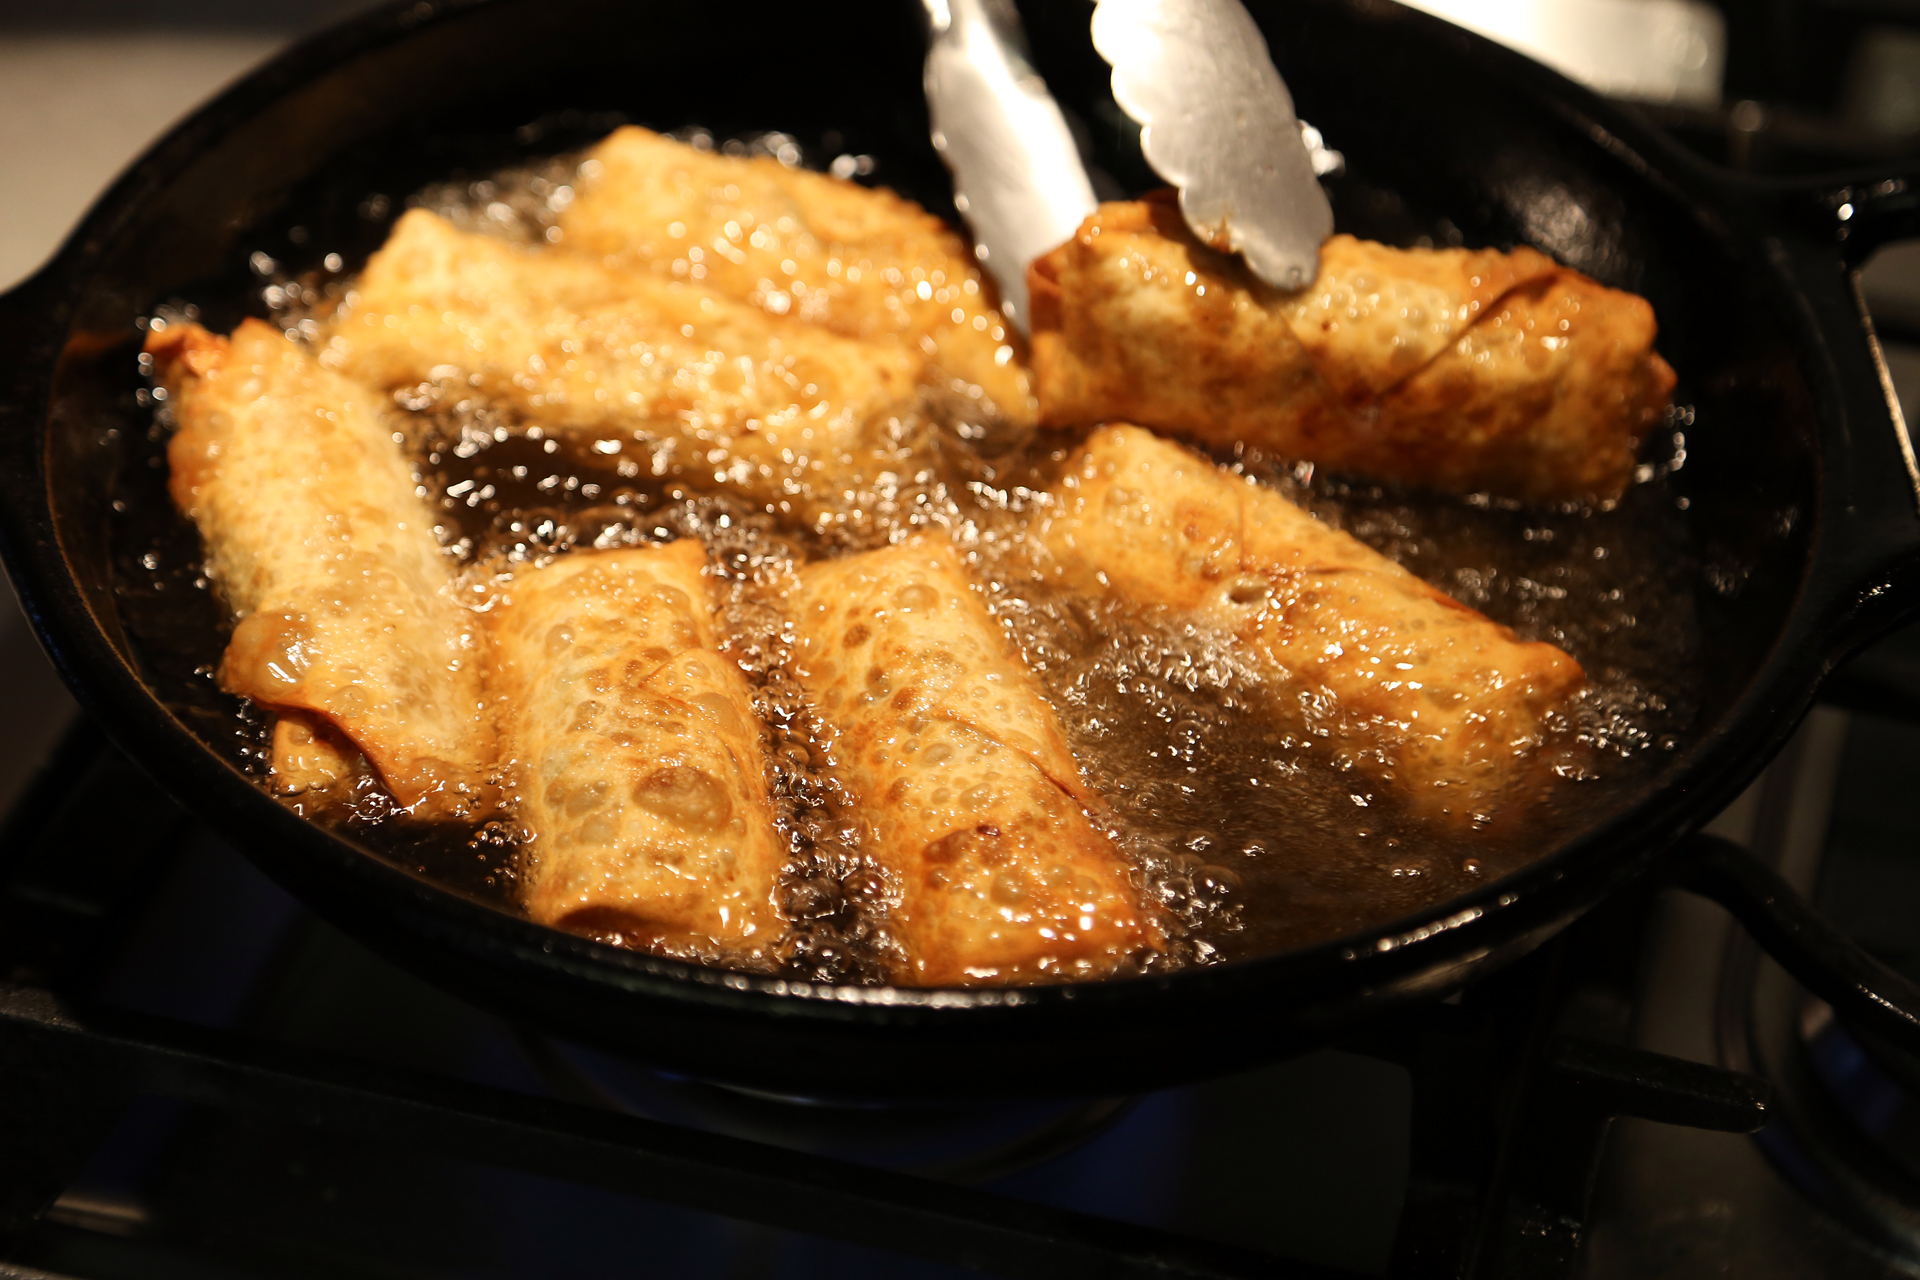 Turn eggrolls occasionally until they are crisp and golden brown on all sides, about 5 minutes.